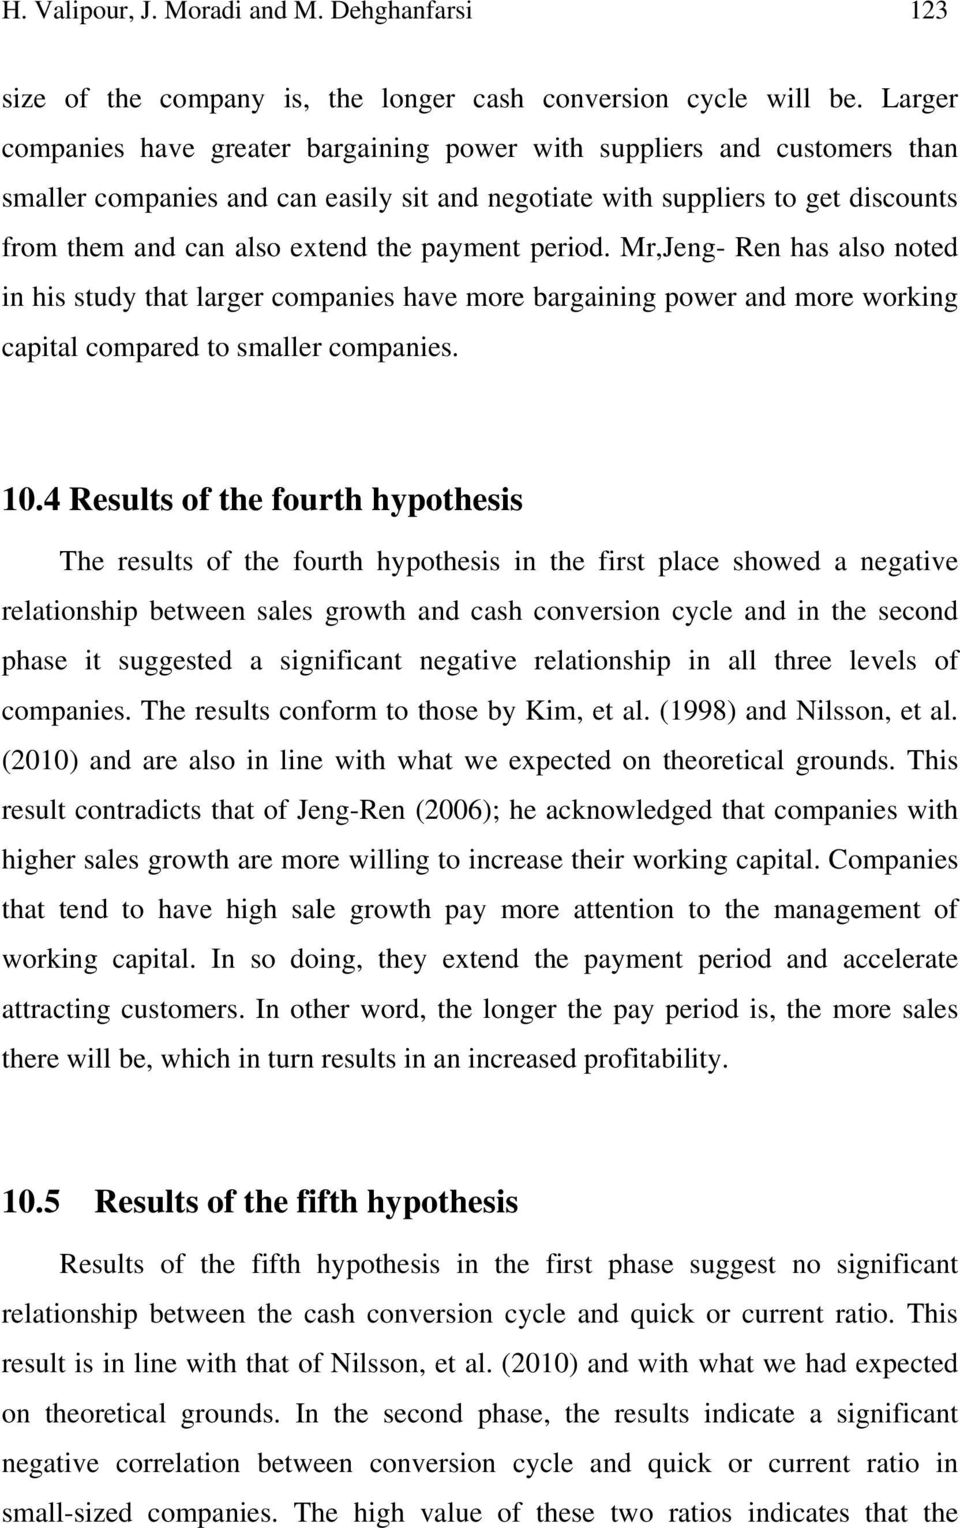 payment period. Mr,Jeng- Ren has also noted in his study that larger companies have more bargaining power and more working capital compared to smaller companies. 10.